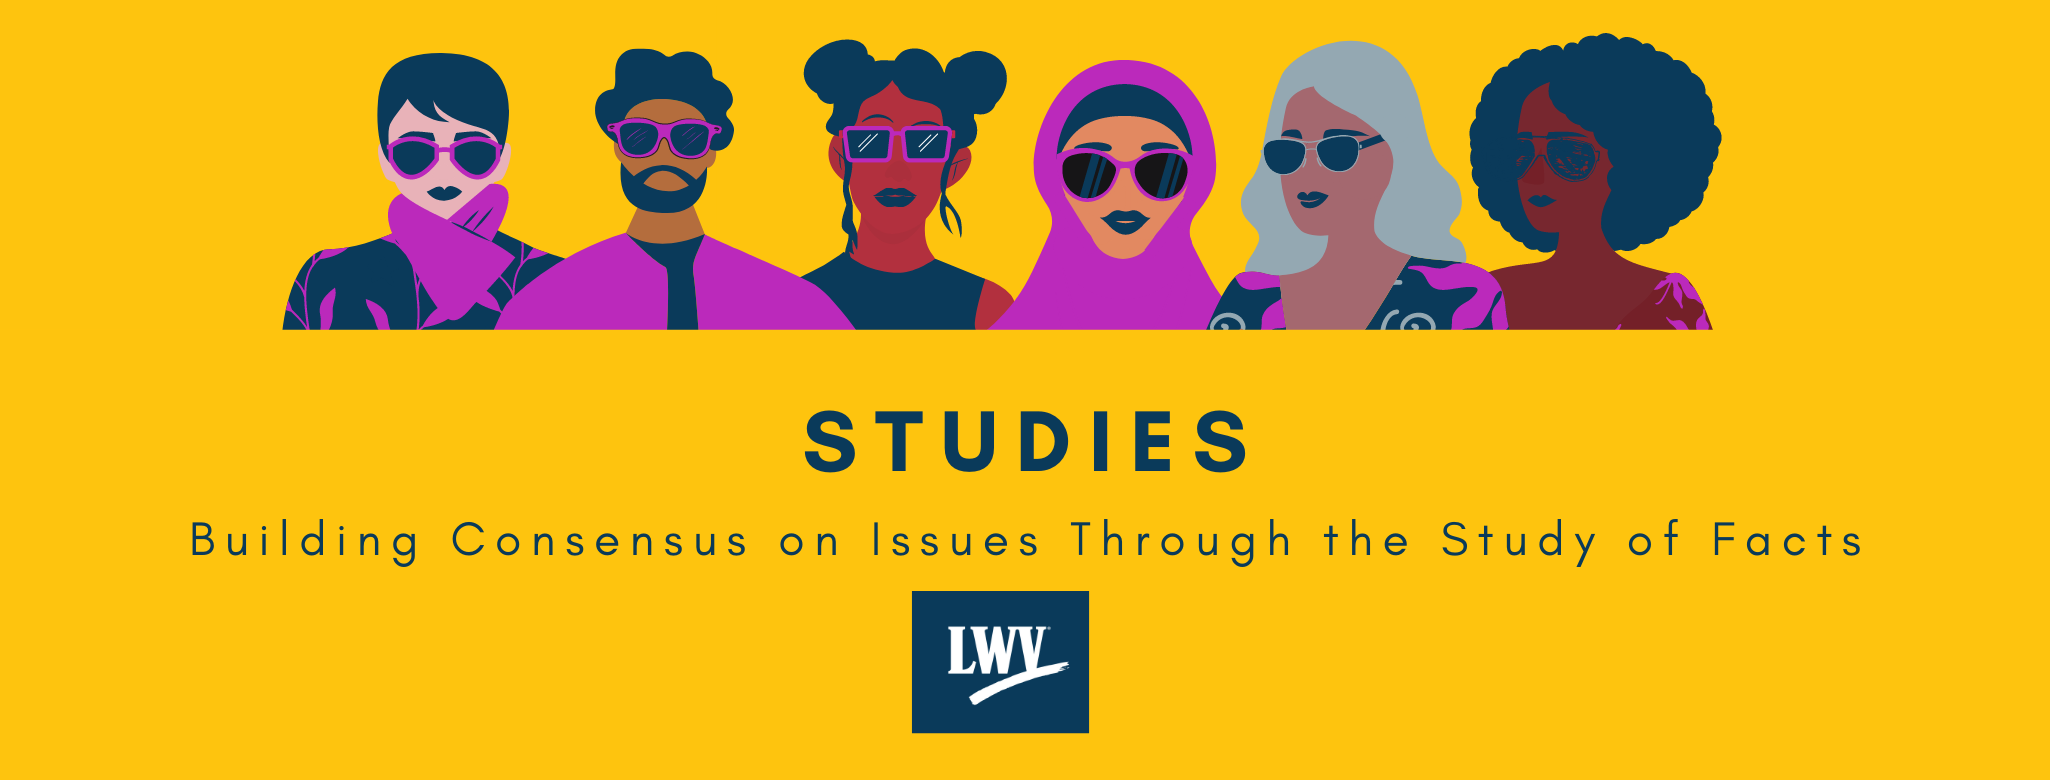 Studies: Building consensus through the study of facts